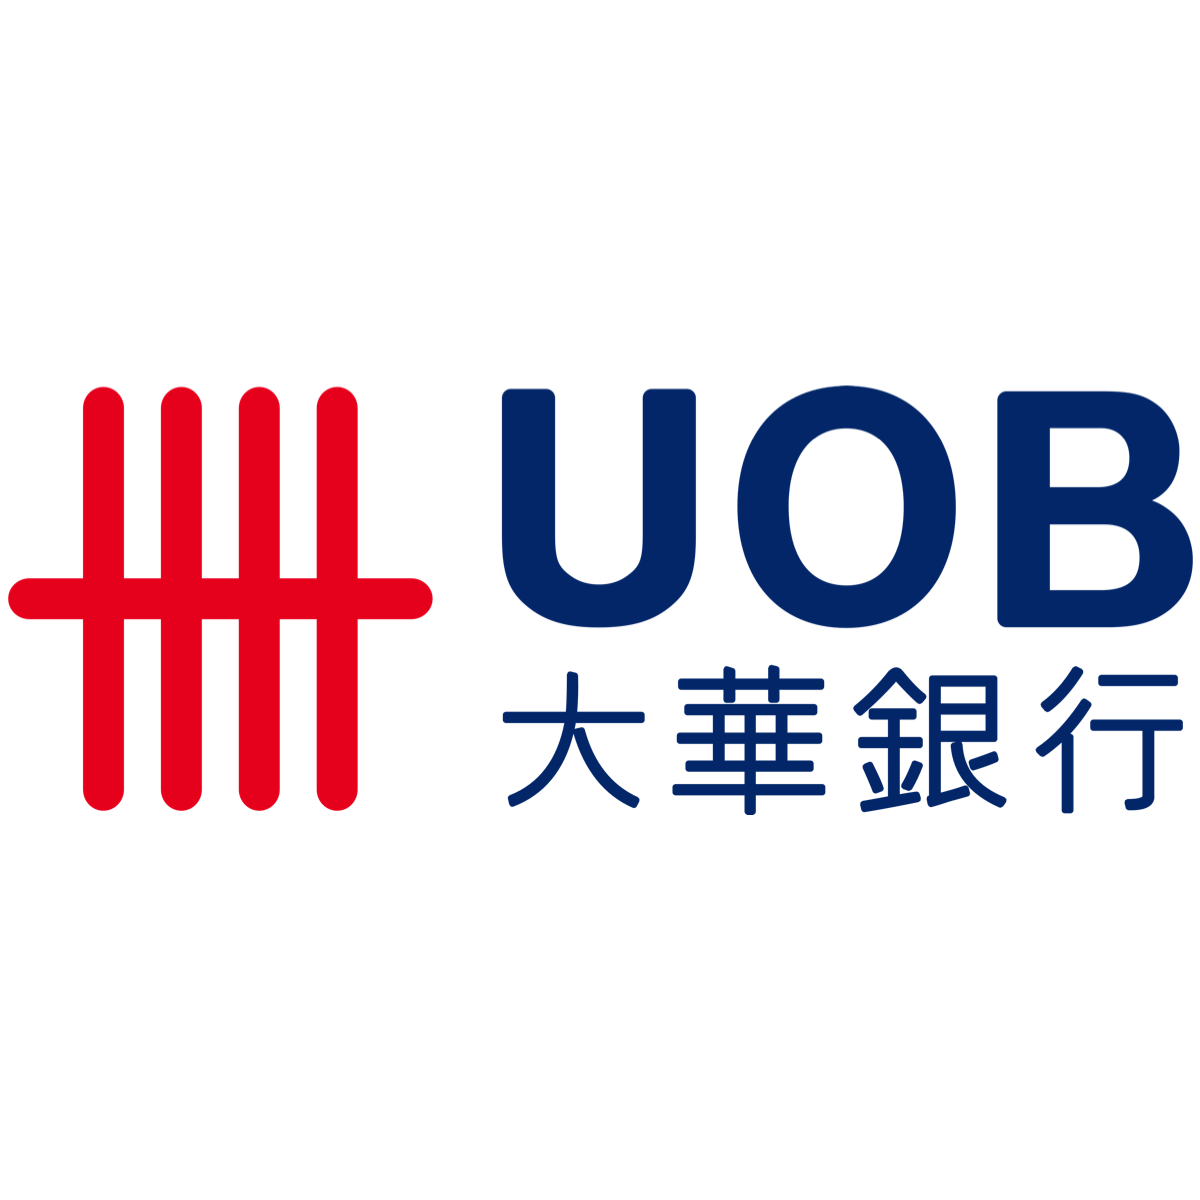 The history of united overseas bank